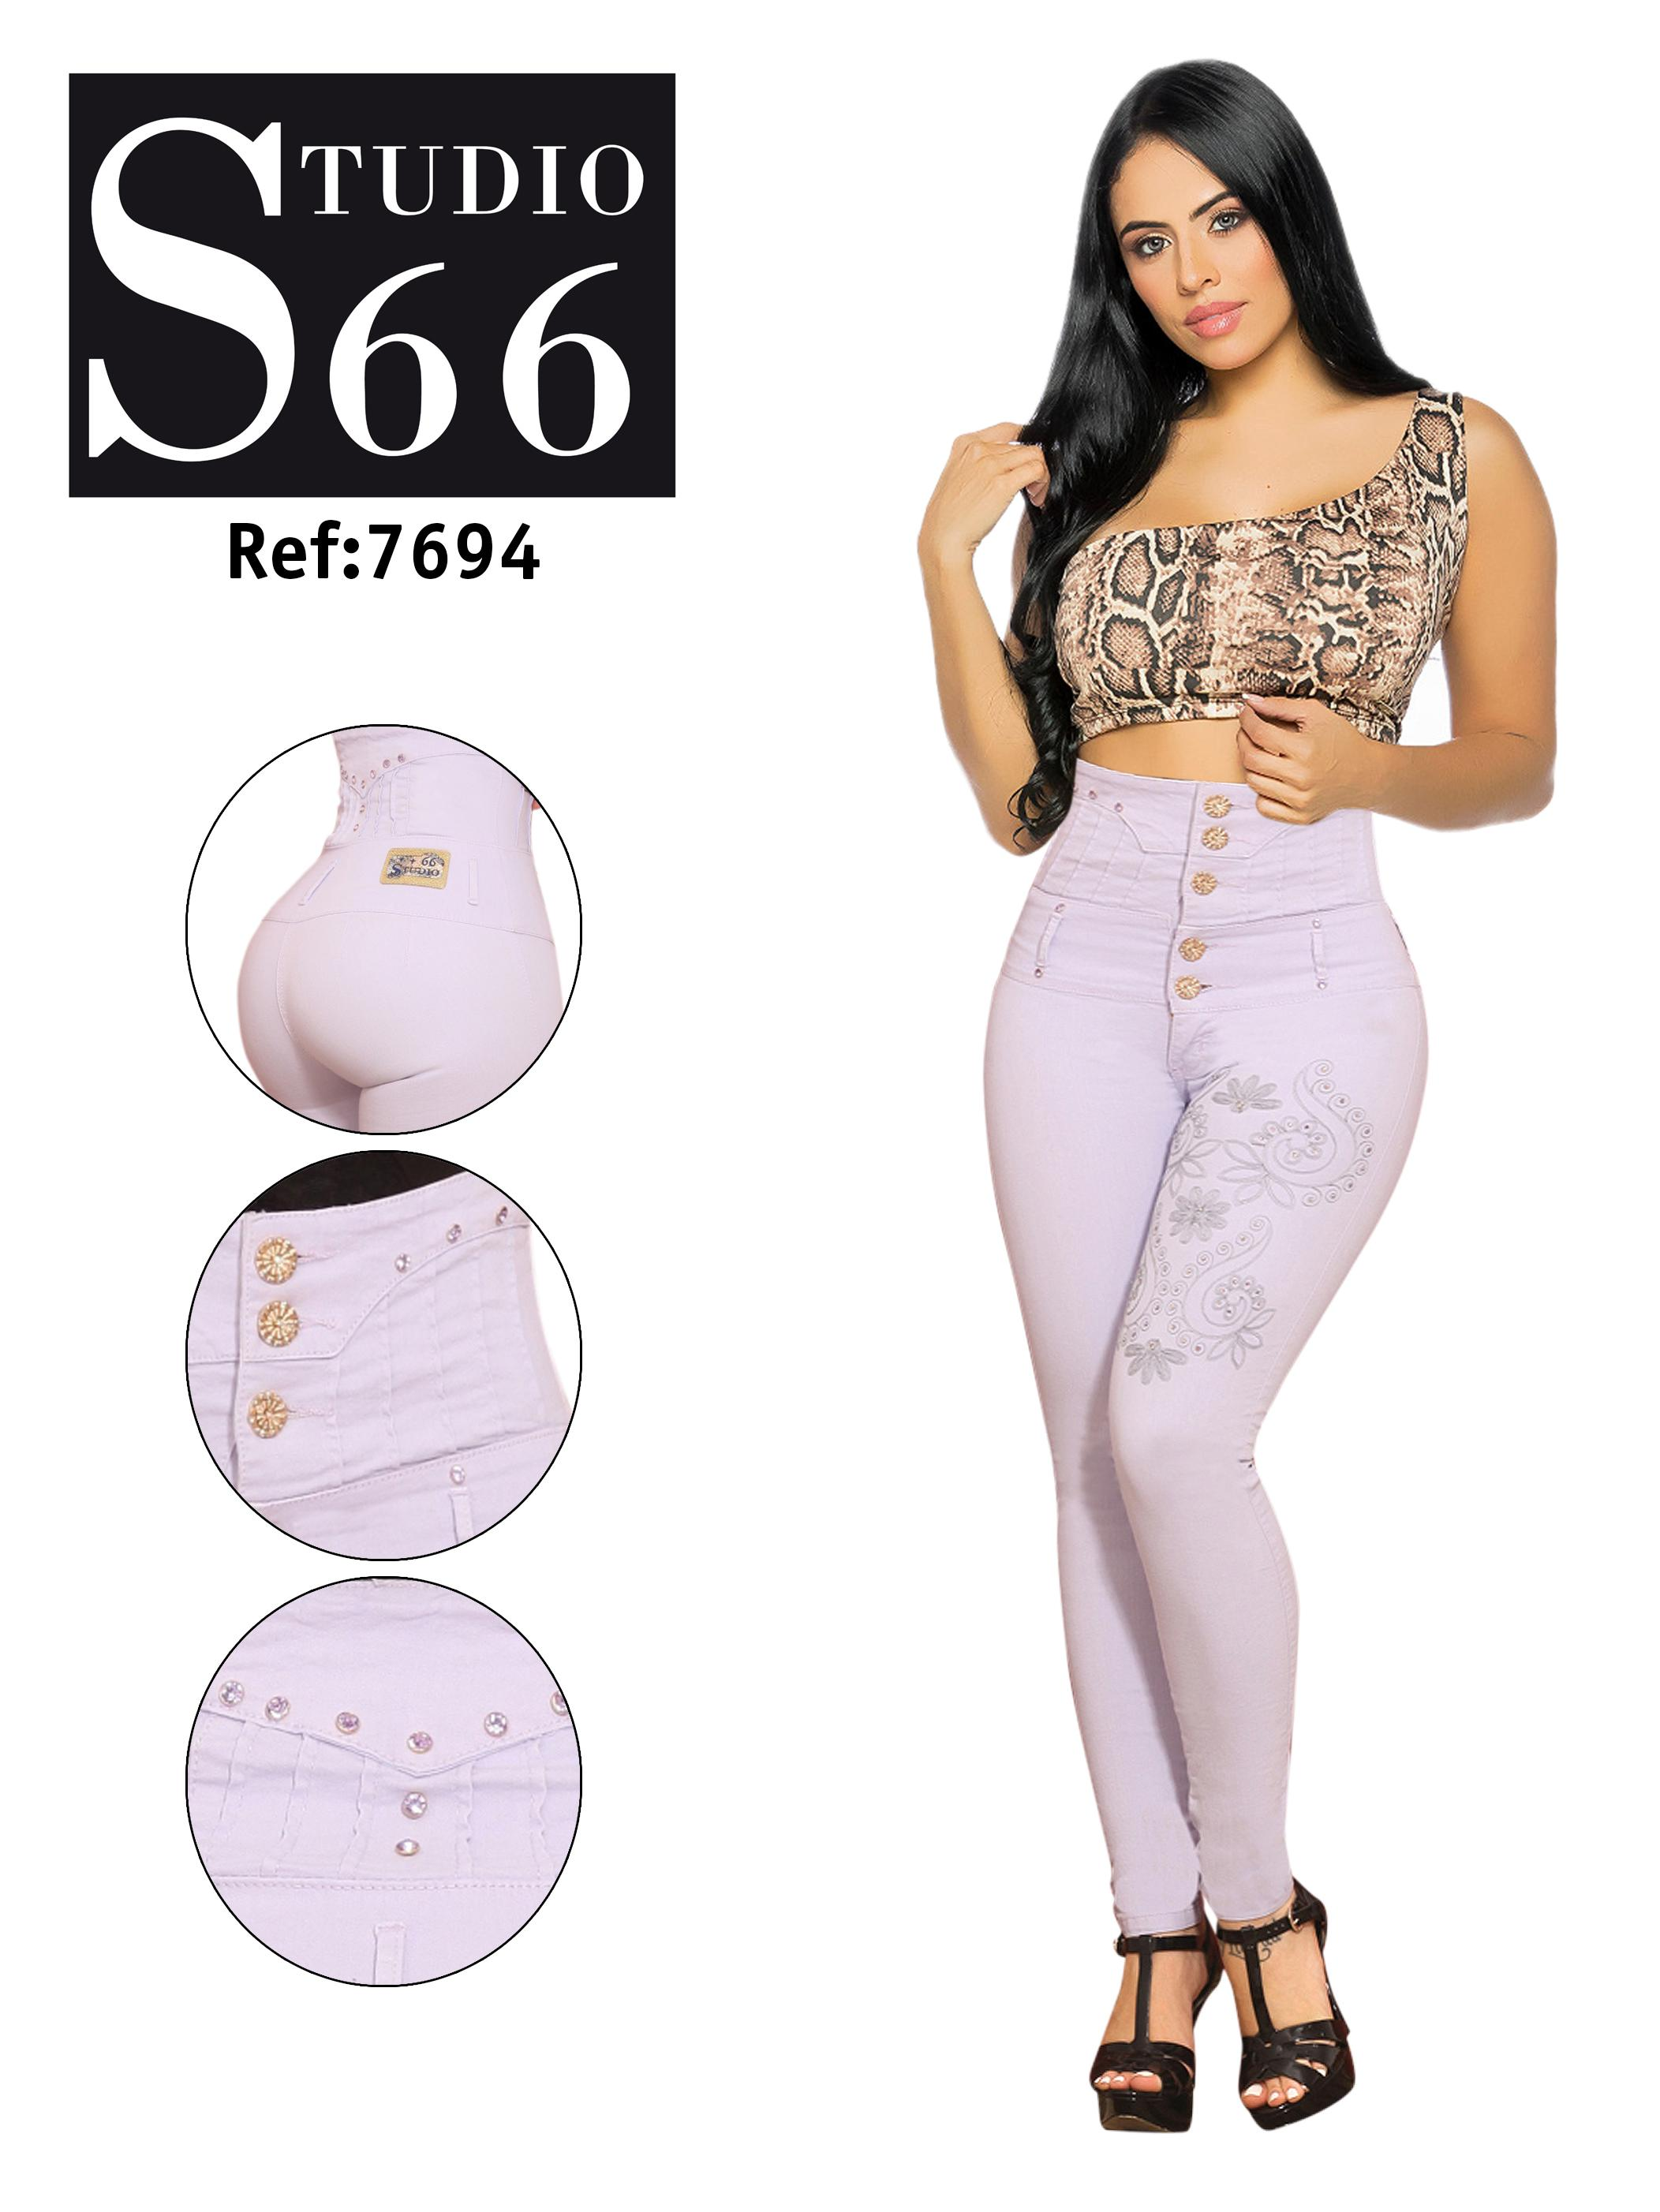 Exclusive Style Ribs Jean